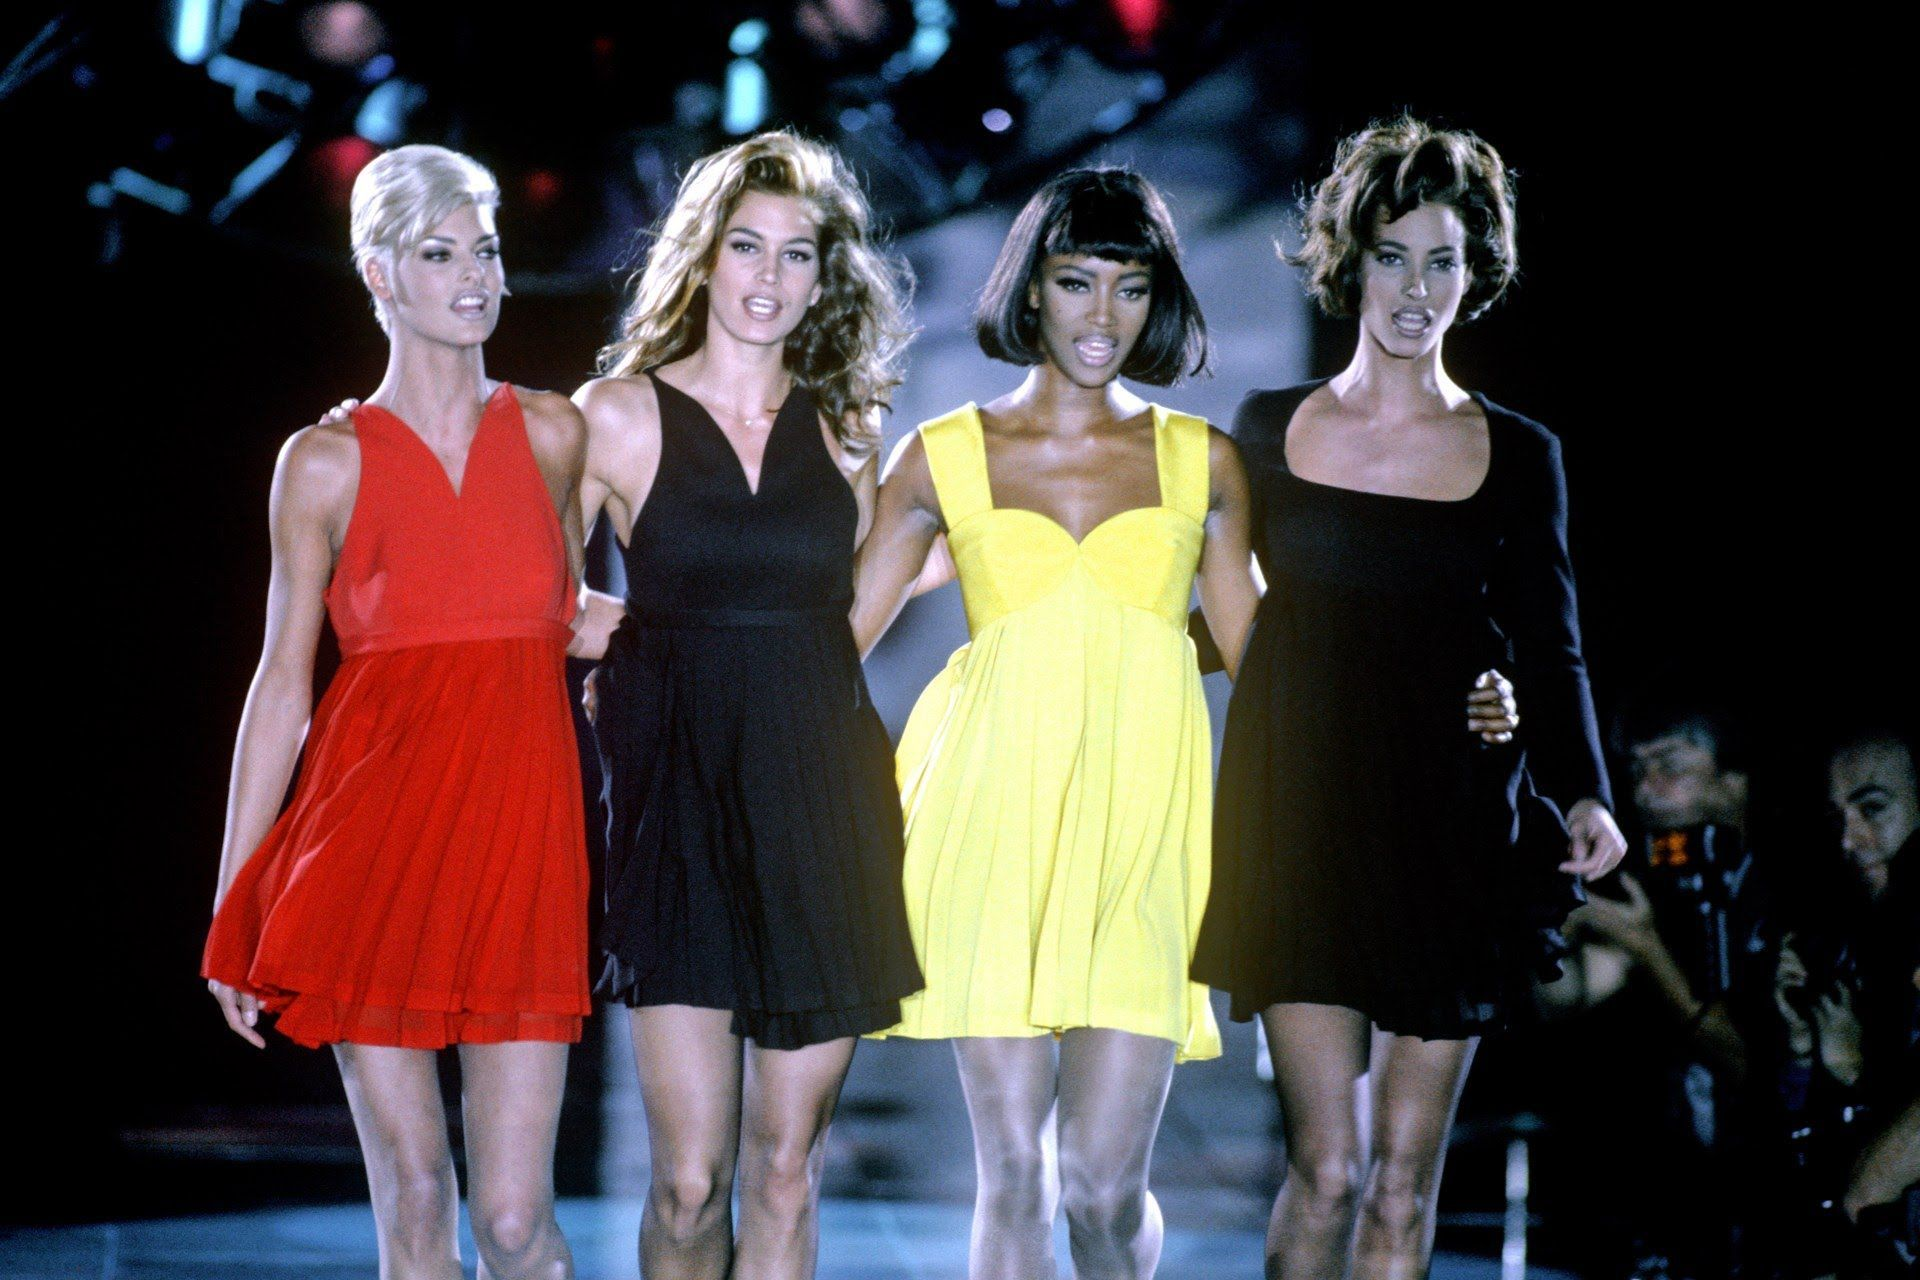 Gianni Versace S Most Iconic Dresses 20 Of The Best Vintage Versace Looks